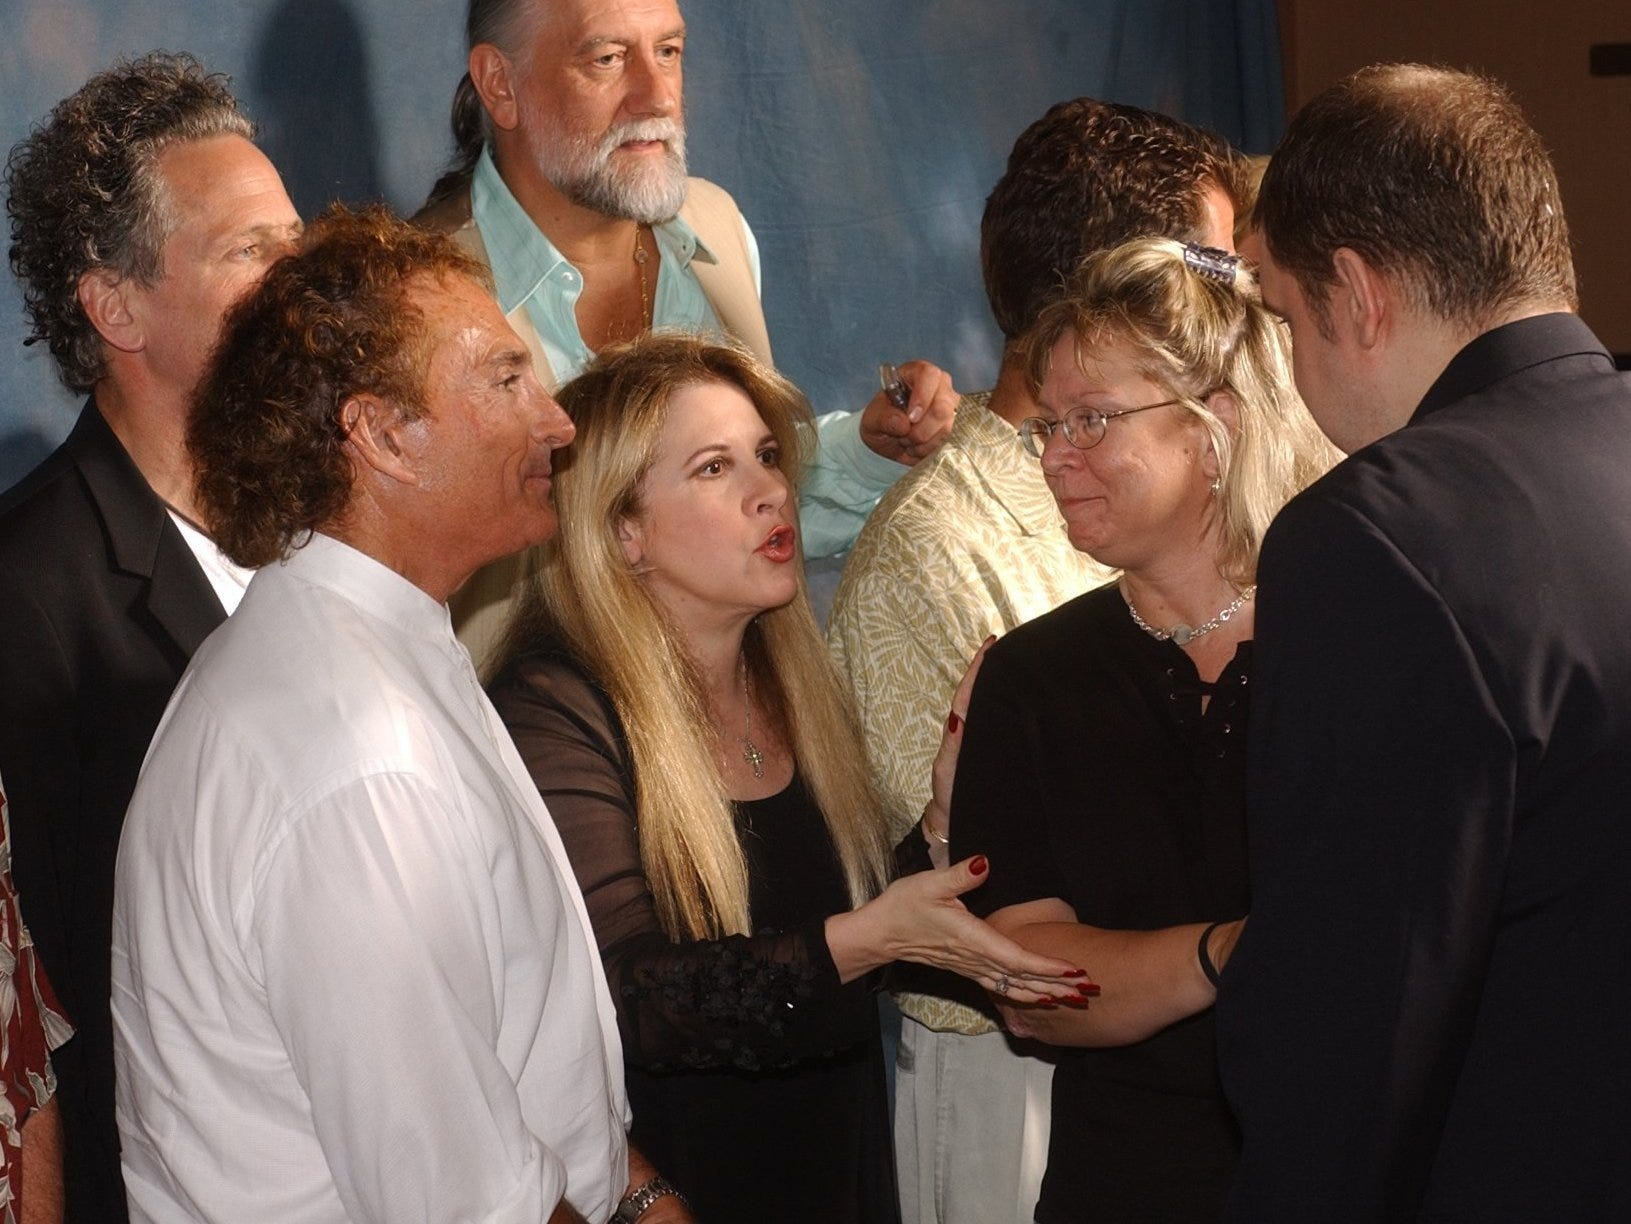 Stevie Nicks (center) shakes hands with Linda Anderson and Scott Williams before having pictures taken with them during a VIP party with Fleetwood Mac at Kincaid's in downtown Phoenix in 2003.